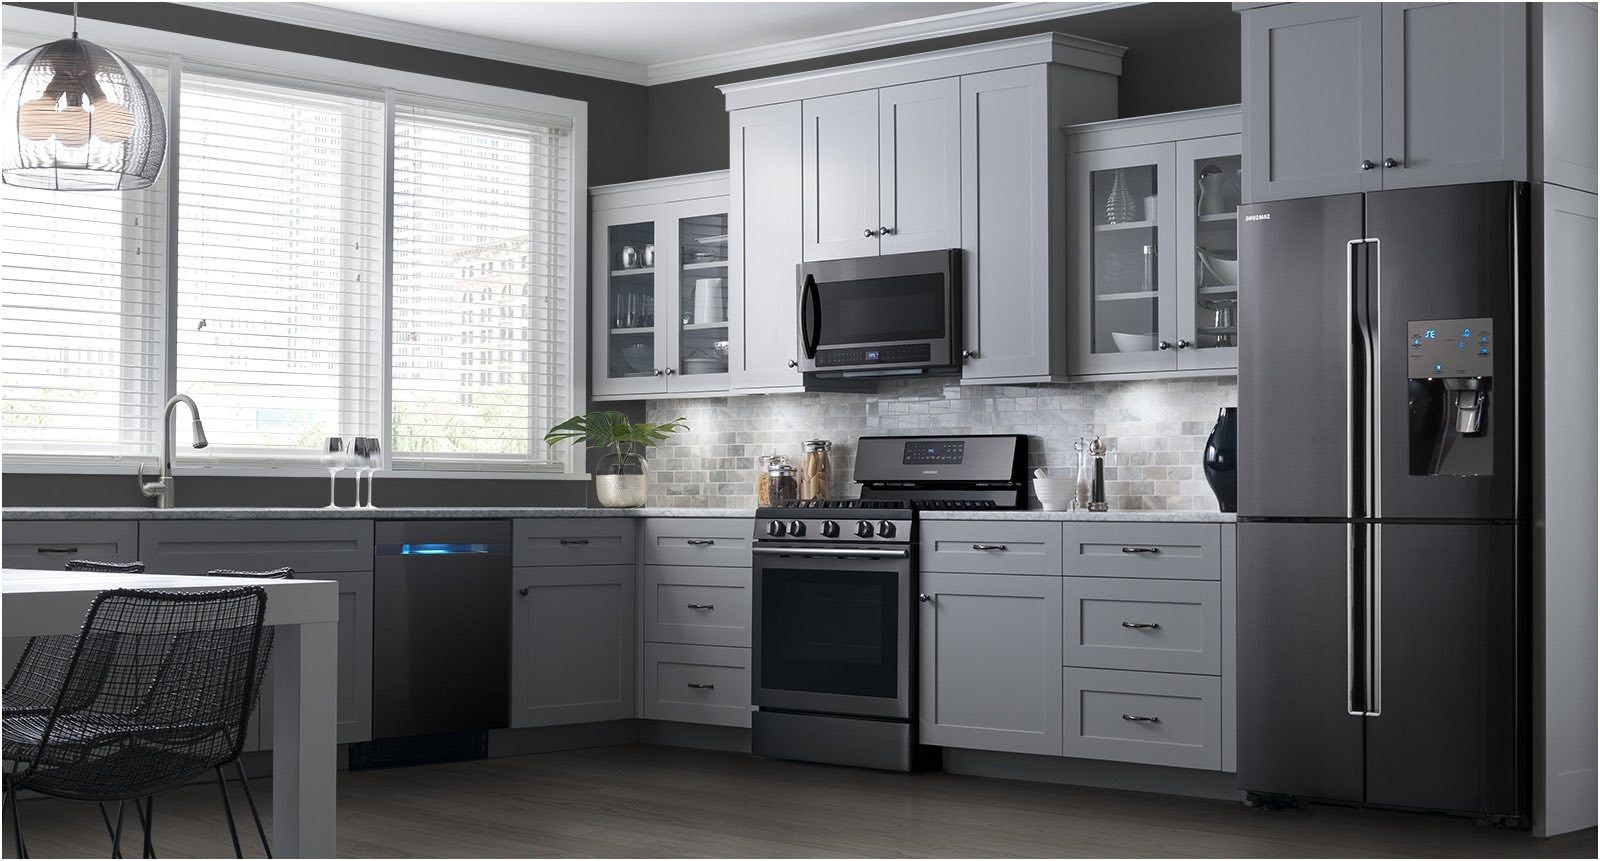 Kitchenaid Vs Samsung Black Stainless Steel Liances Reviews From Office Kitchen